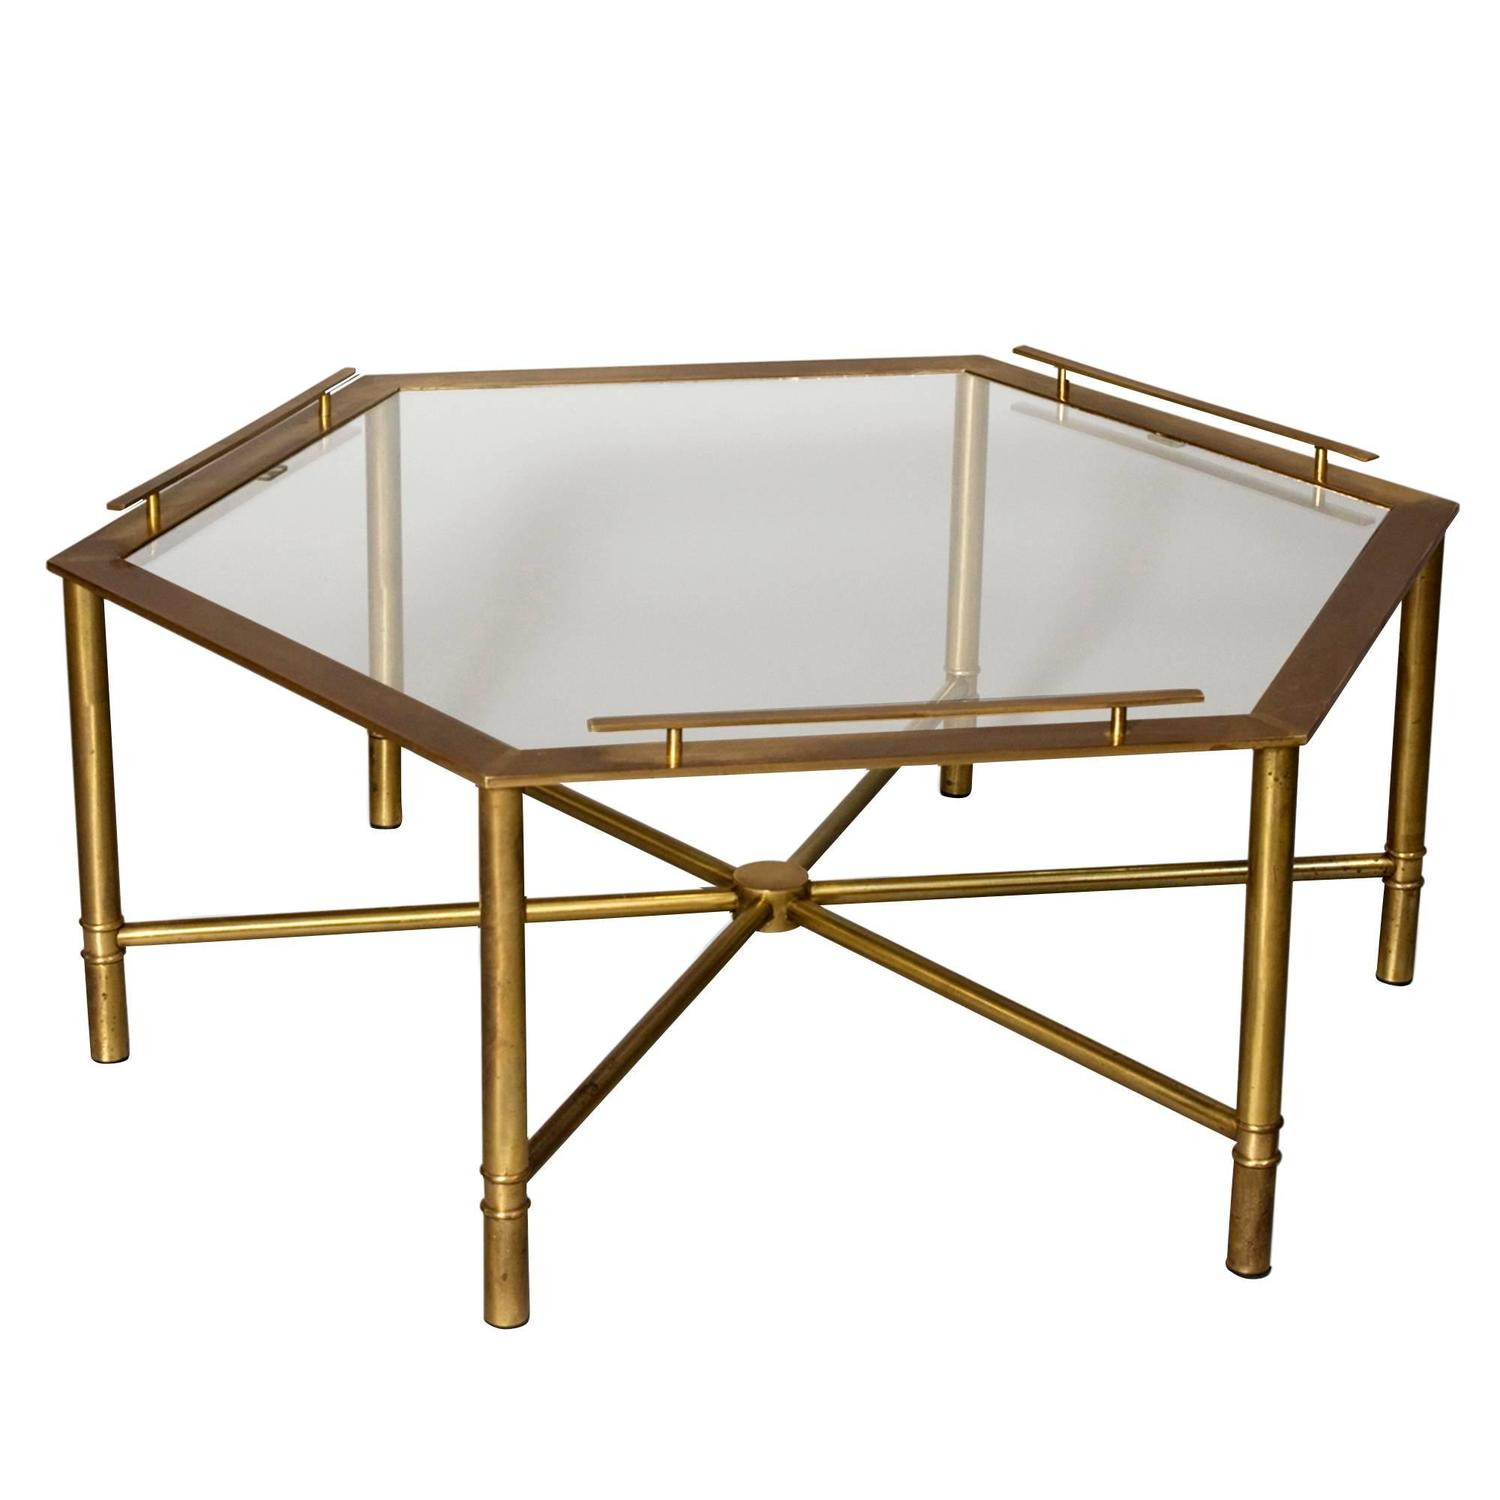 Bronze hex coffee table by mastercraft at 1stdibs Bronze coffee tables